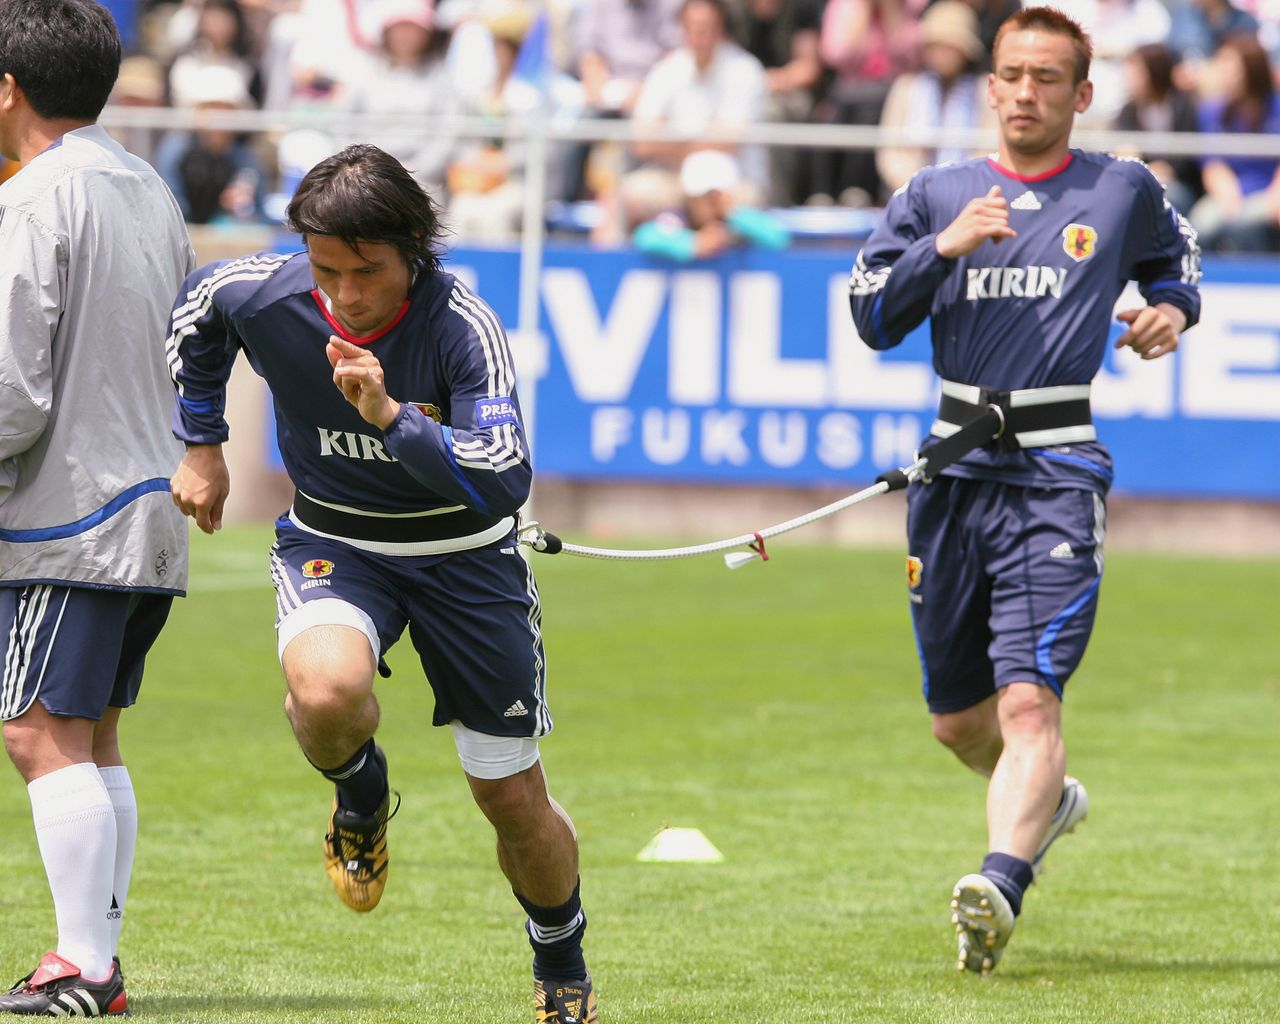 Japanese national team players train at the J-Village in May 2006 ahead of the FIFA World Cup. (© Jiji)